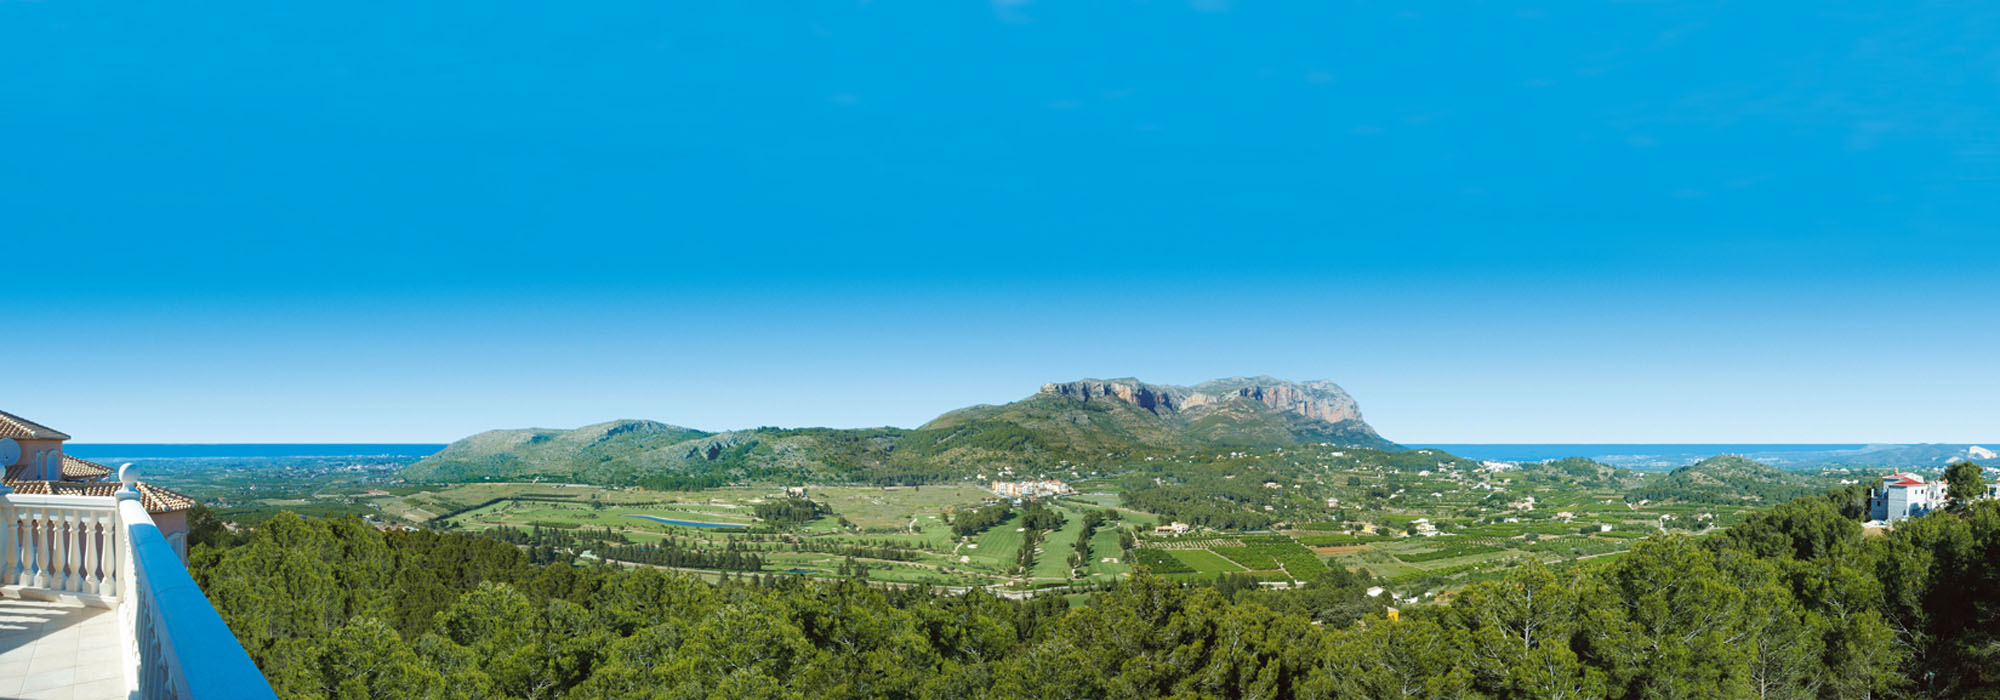 Views from La Sella Residential